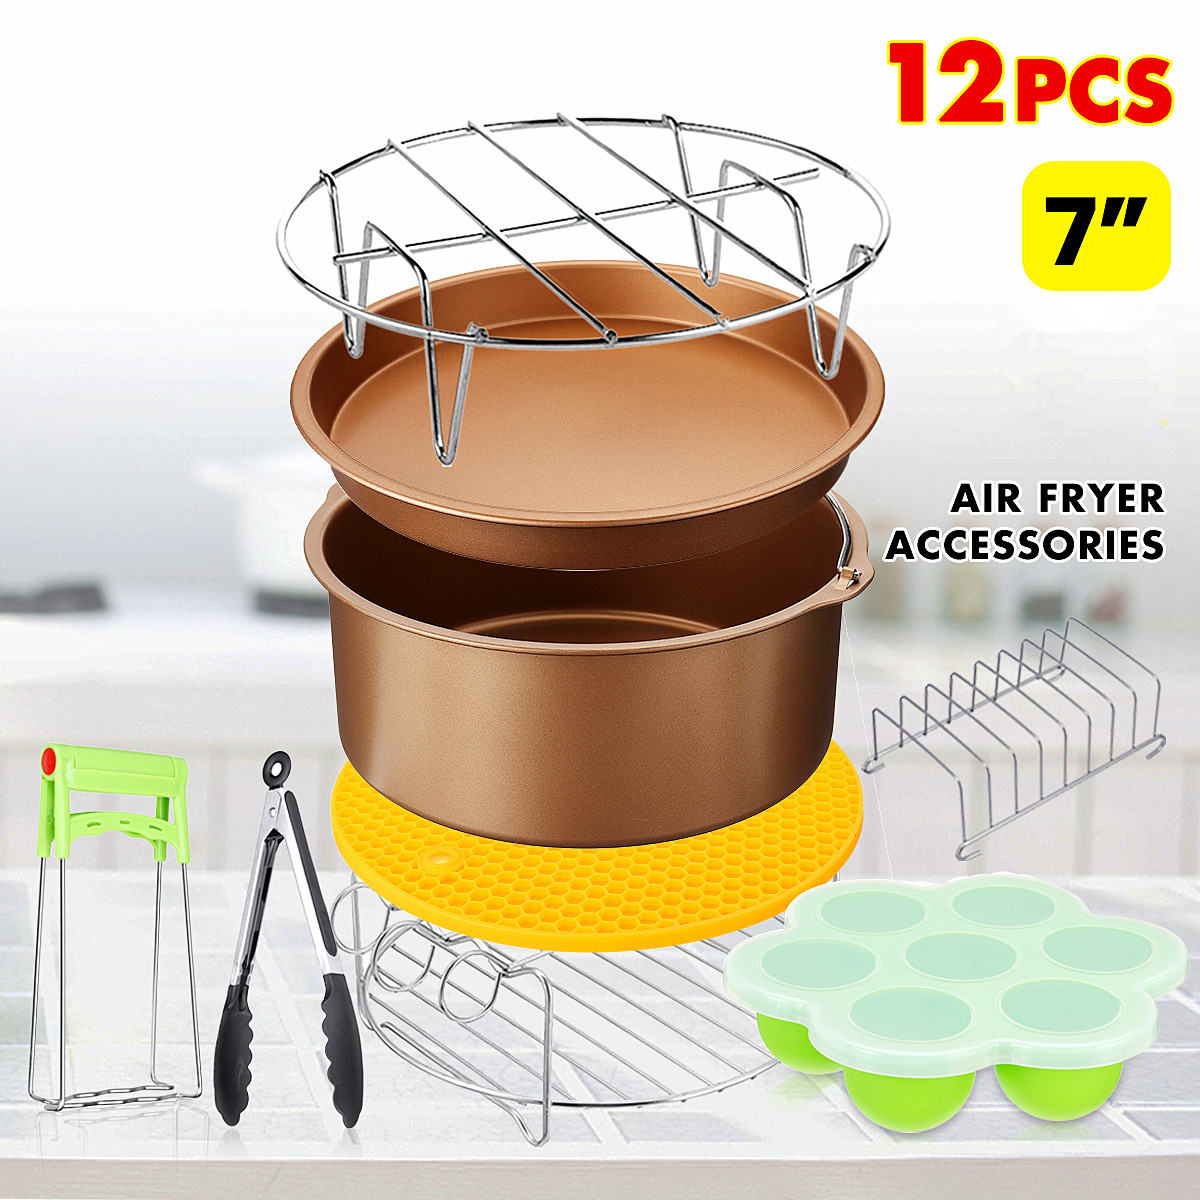 Newest 12Pcs 7 Inch Air Fryer Accessories Kitchen Cooking Baking Pan Set For 3.2-6.8QT Air Fryer Home Tools High Quality